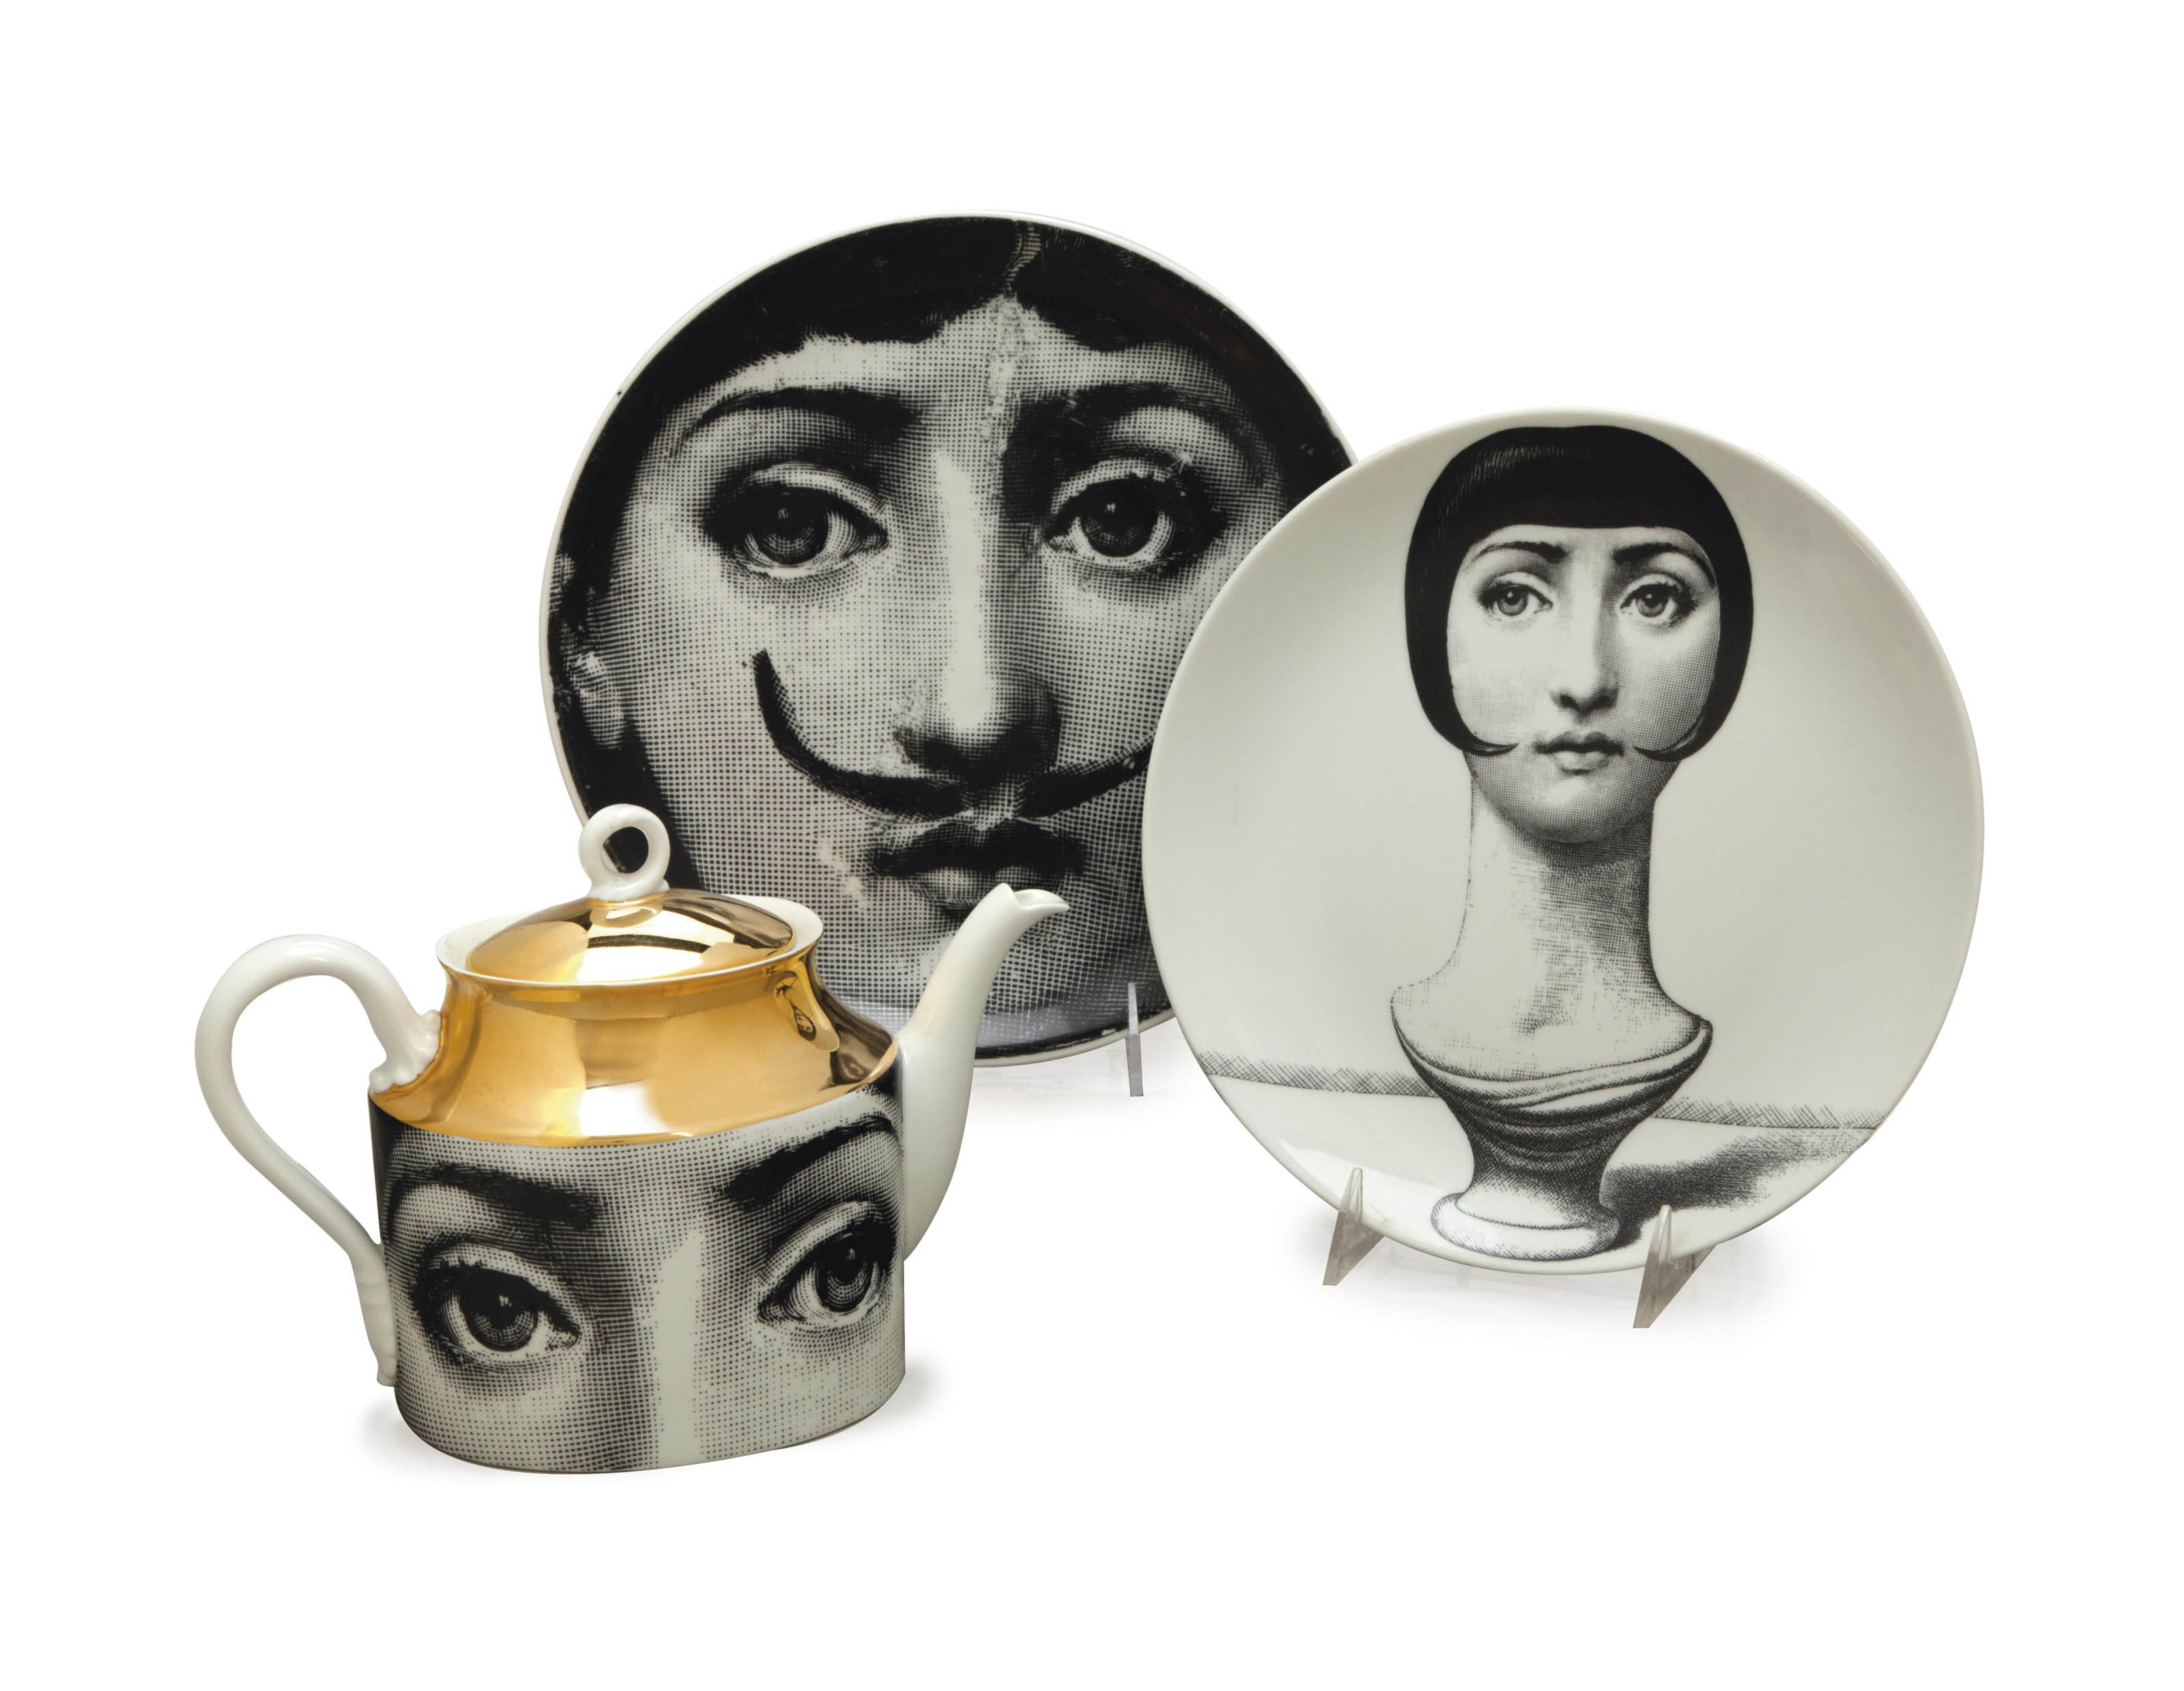 AN ASSEMBLED ITALIAN PORCELAIN FORNASETTI DESIGNED 'JULIA' PART TABLE SERVICE,